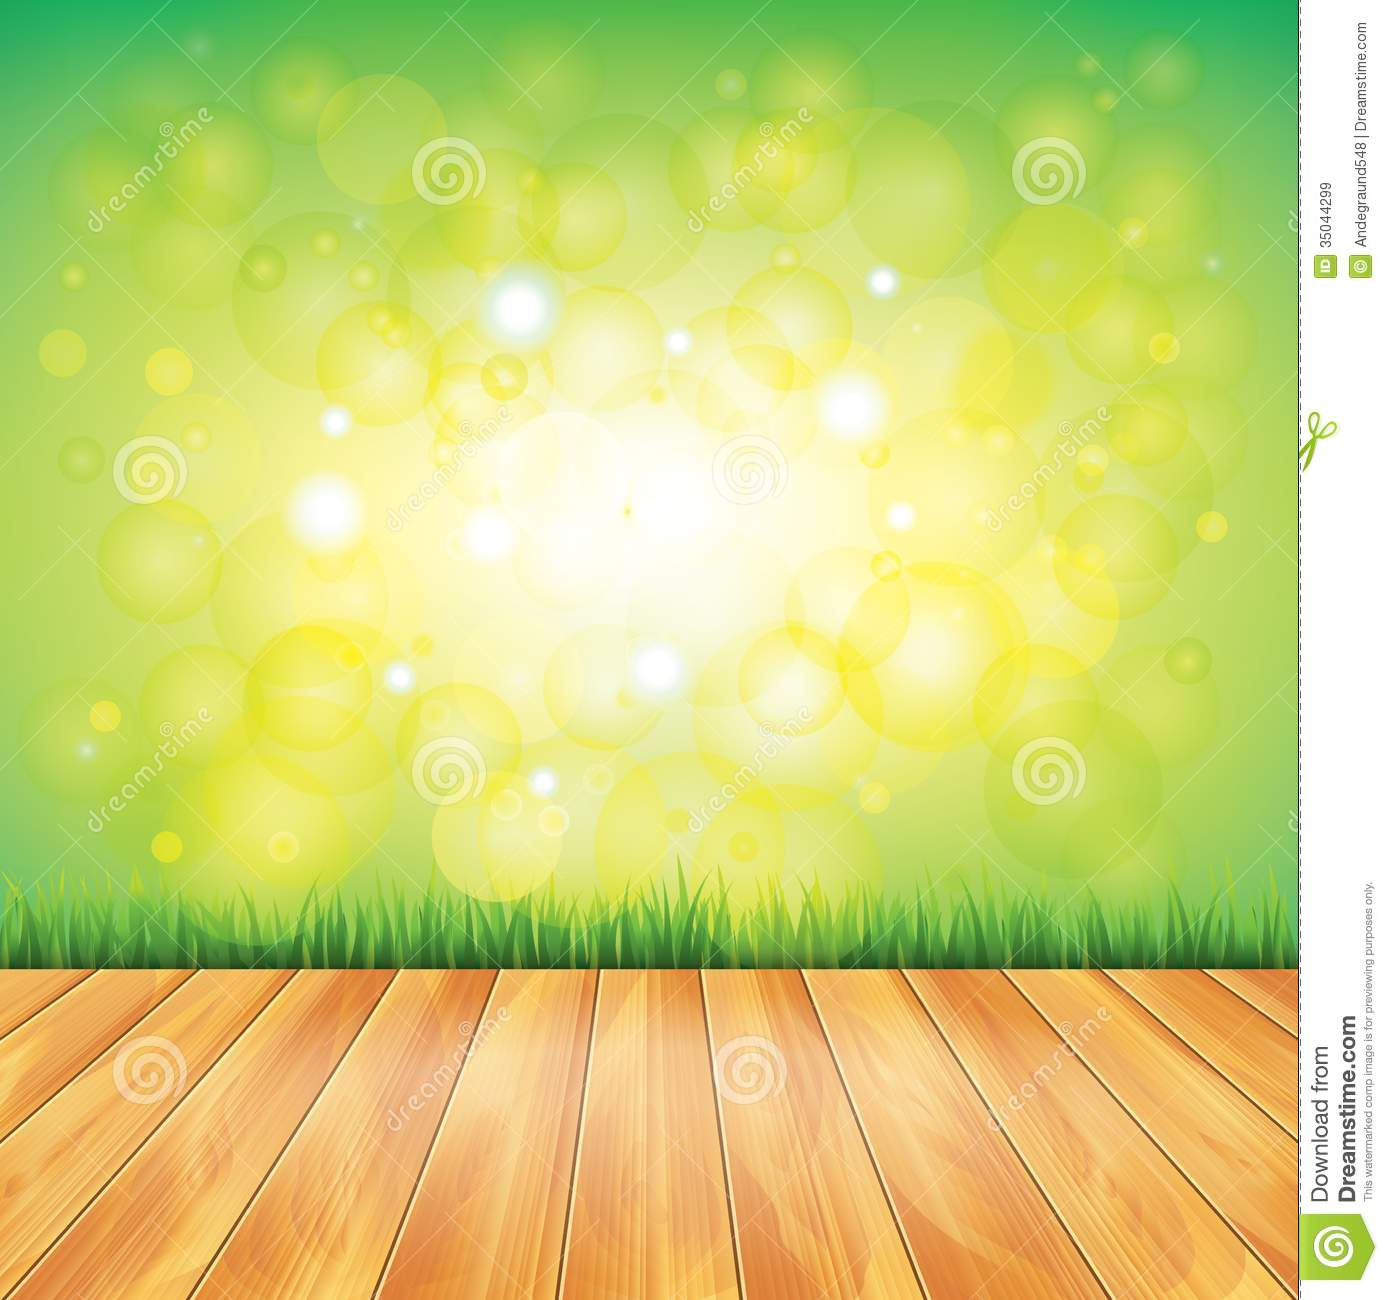 Wood Floor And Green Grass Vector Background Royalty Free